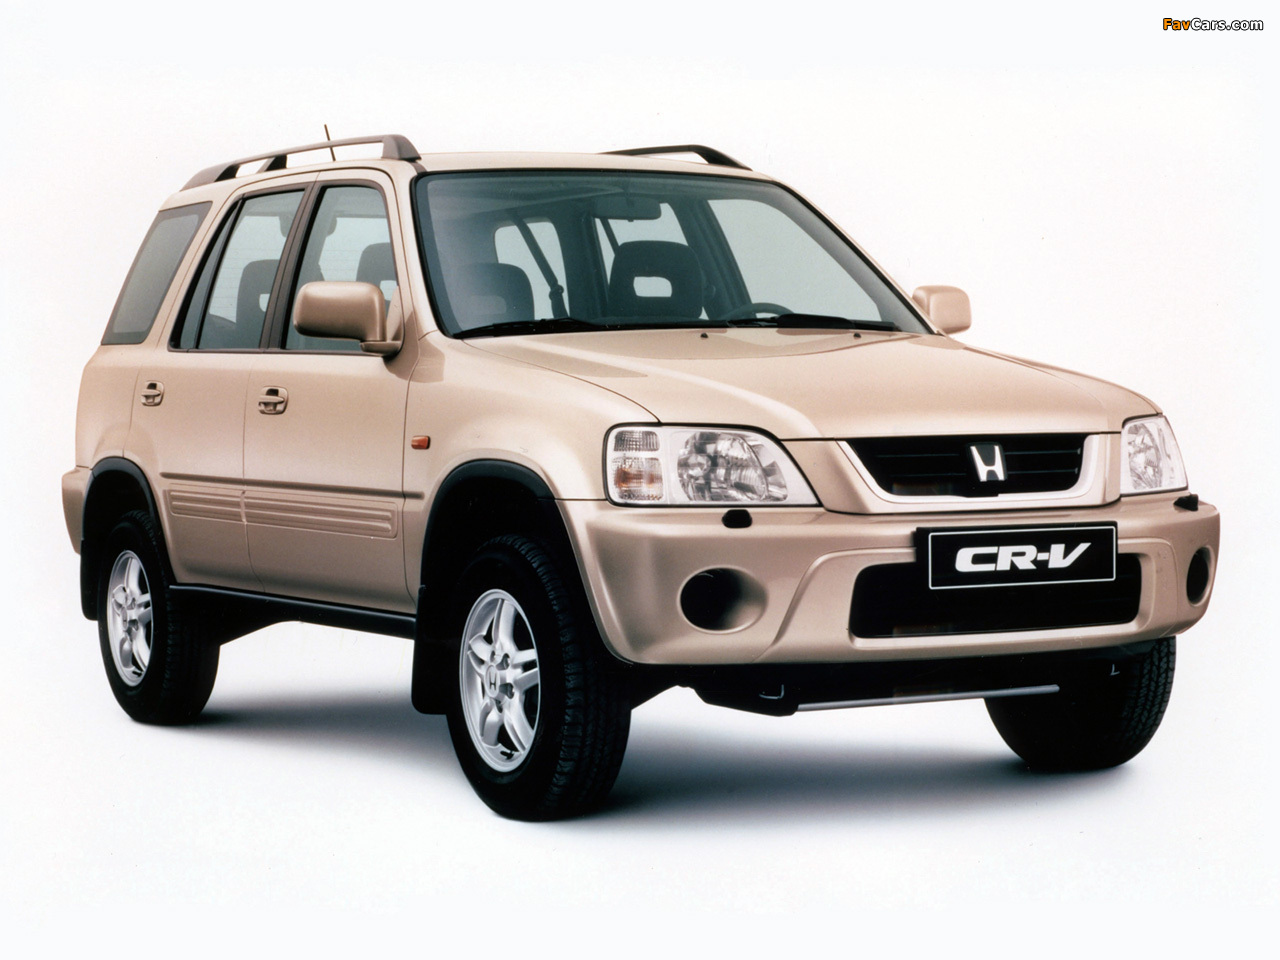 Honda cr v rd1 1999 2001 photos